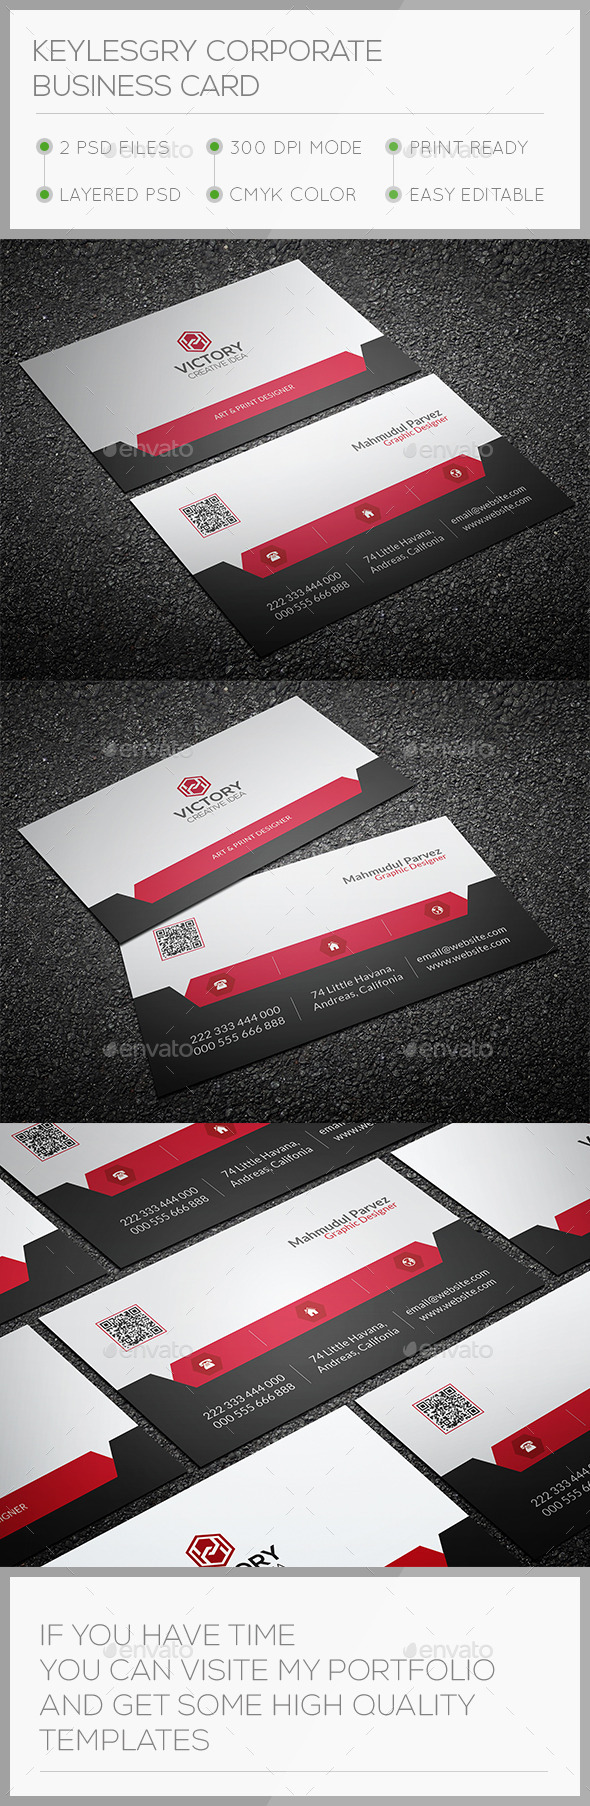 GraphicRiver Keylesgry Corporate Business Card 10694035